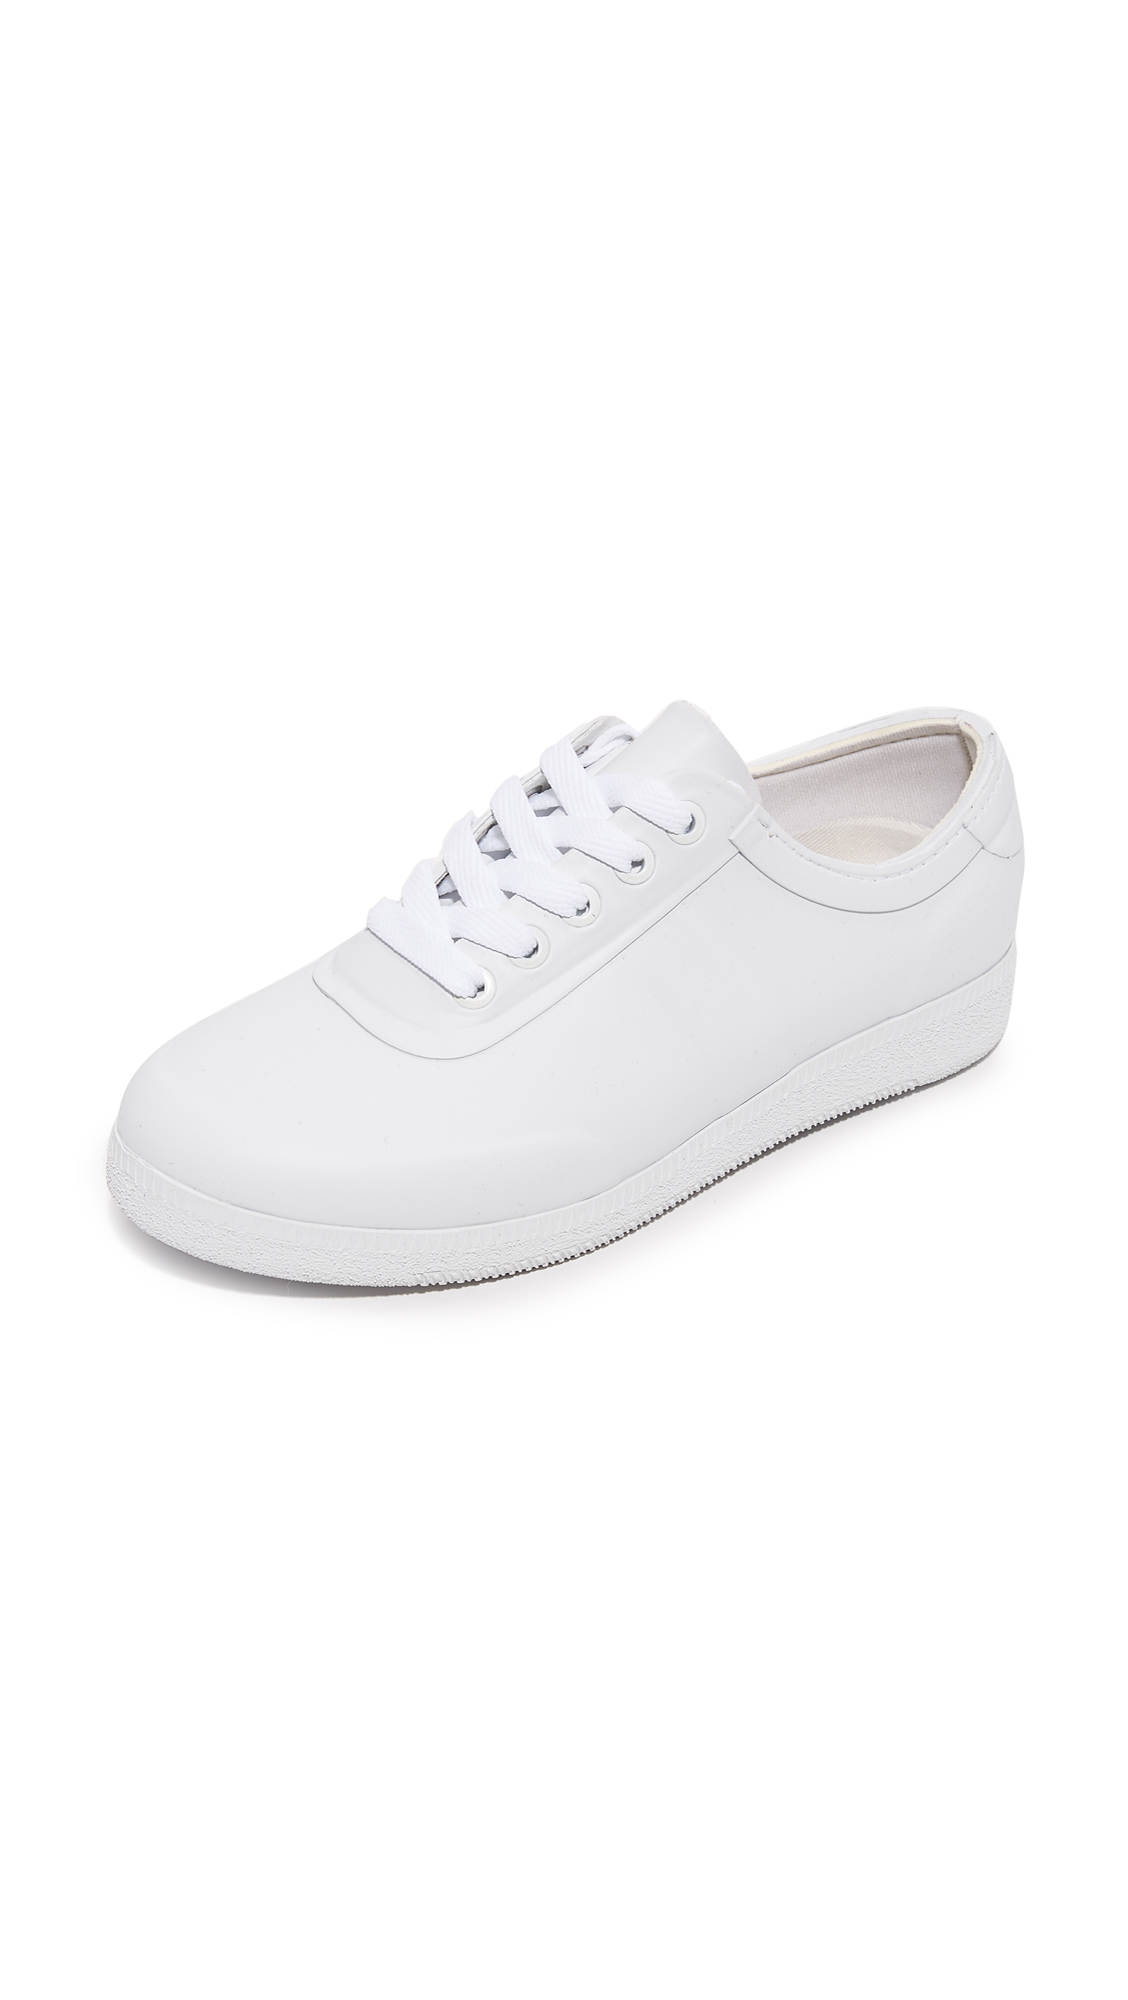 Hunter Boots Original Low Rubber Sneakers - White at Shopbop